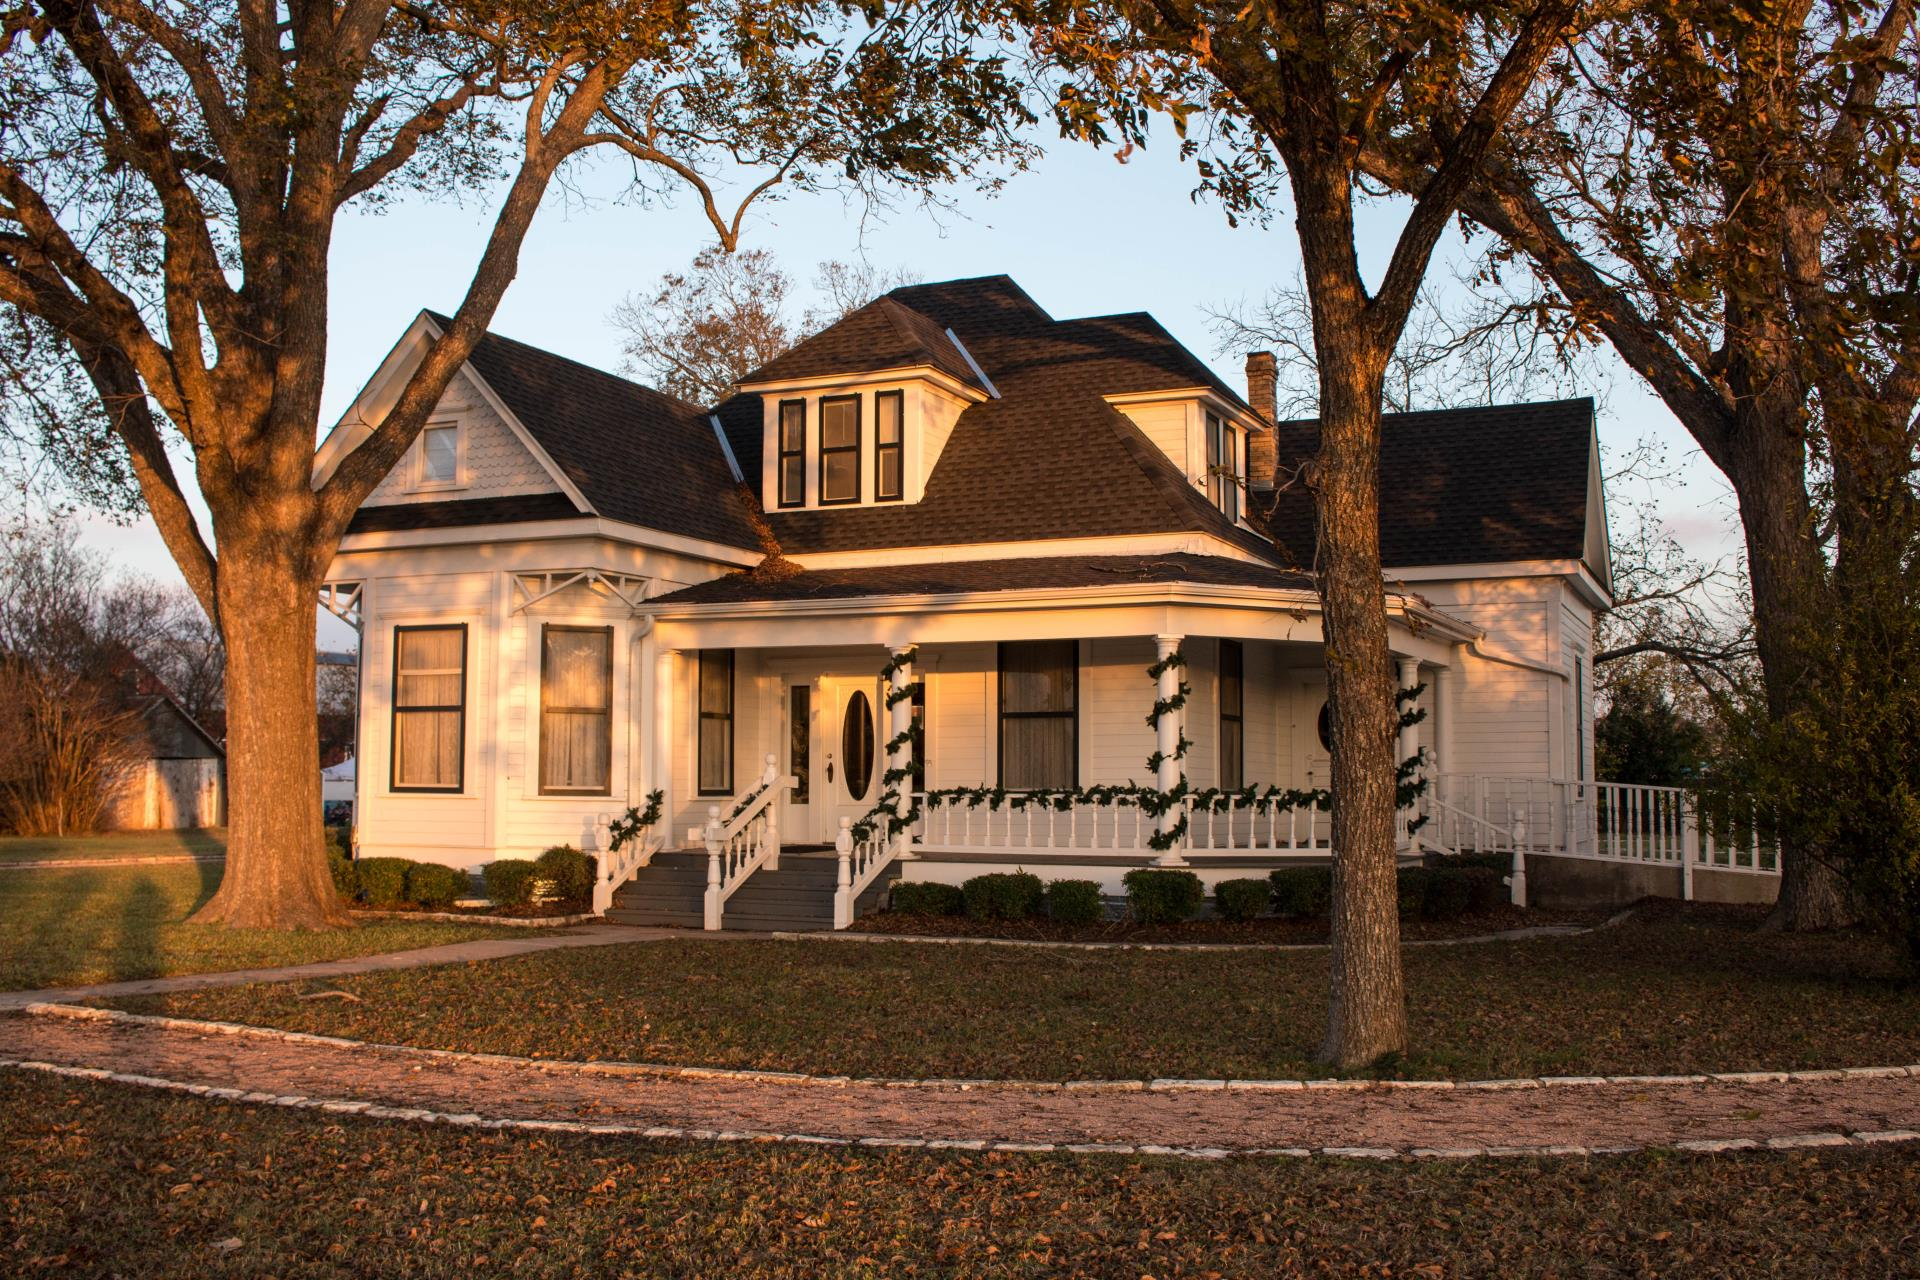 The Heritage House Museum (Bohls House) is part of the Pflugerville Heritage Park.